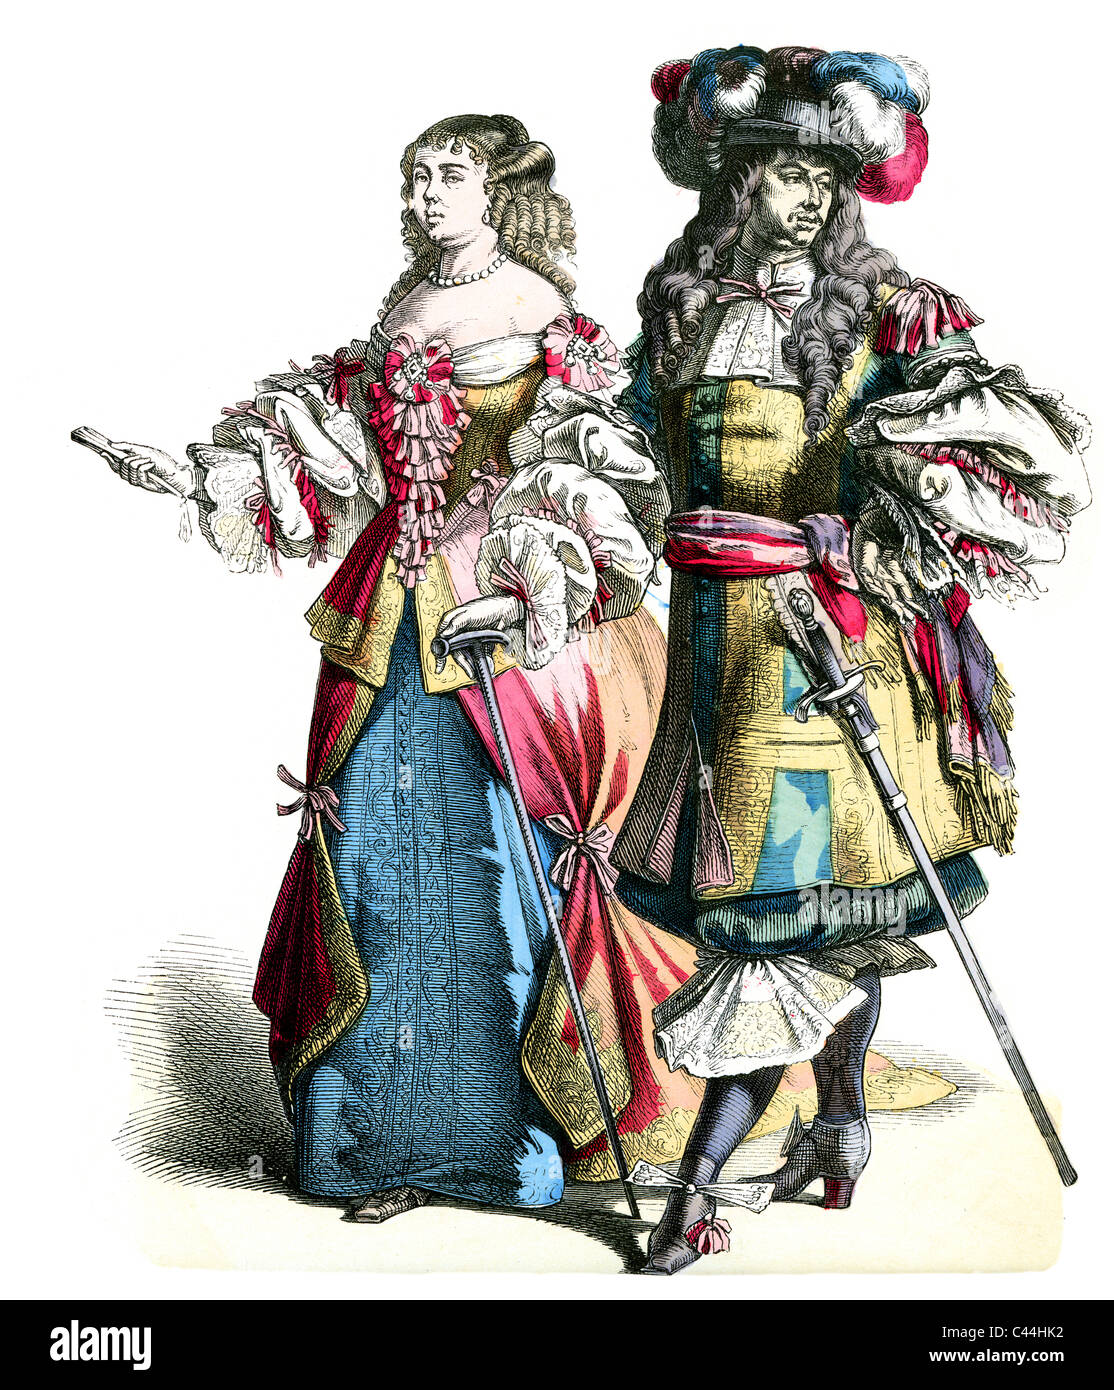 A man and a woman wearing dutch period costumes of the 17th Century - Stock Image